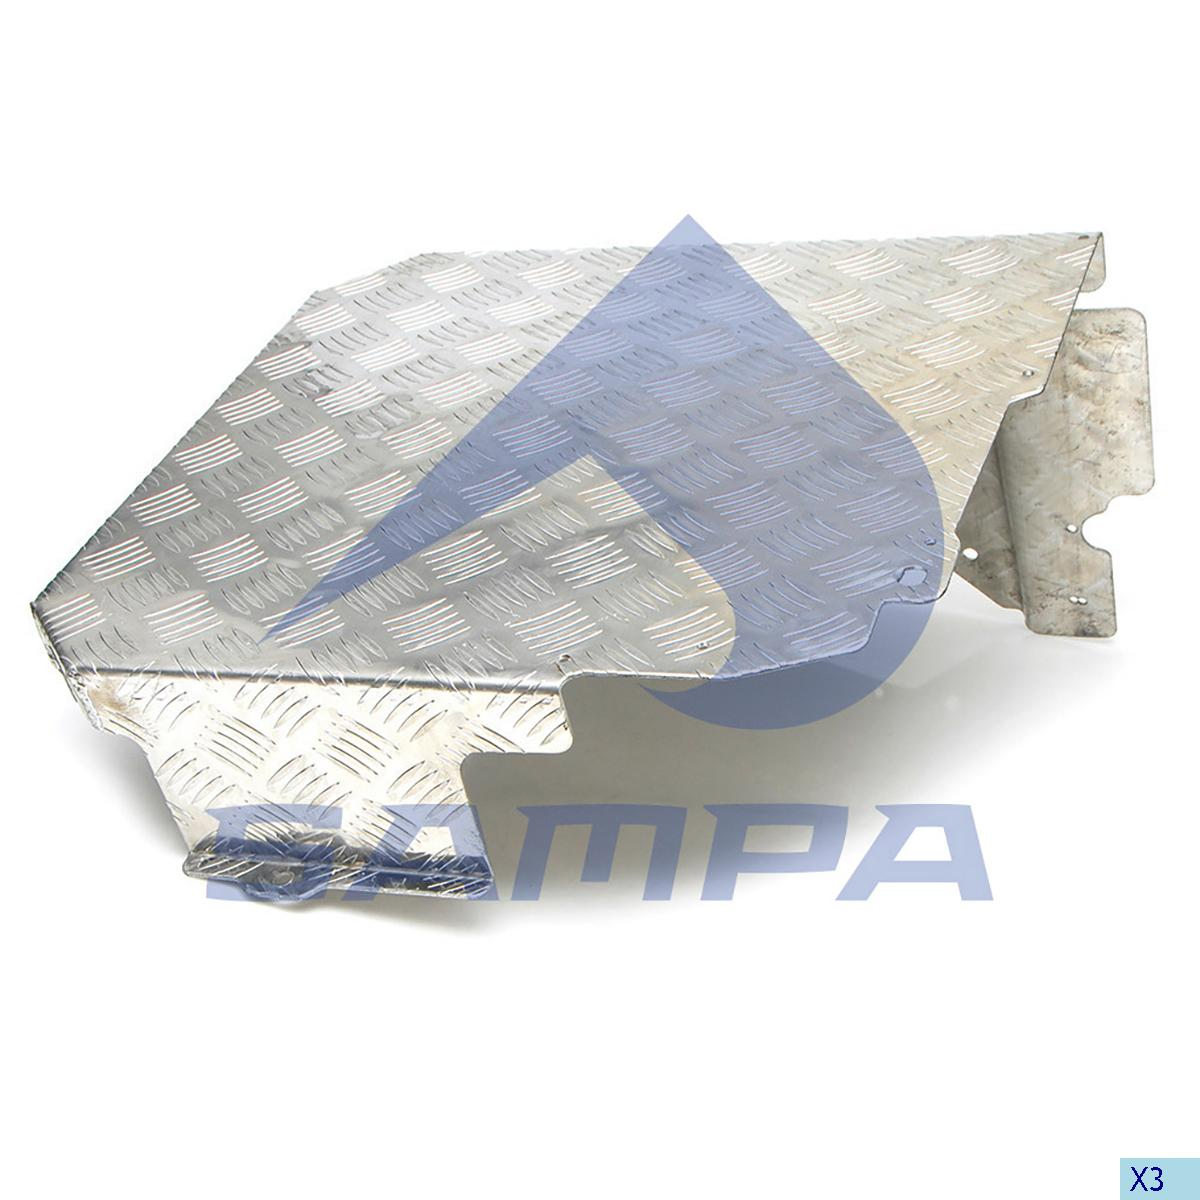 Heat Shield, Exhaust, Scania, Engine